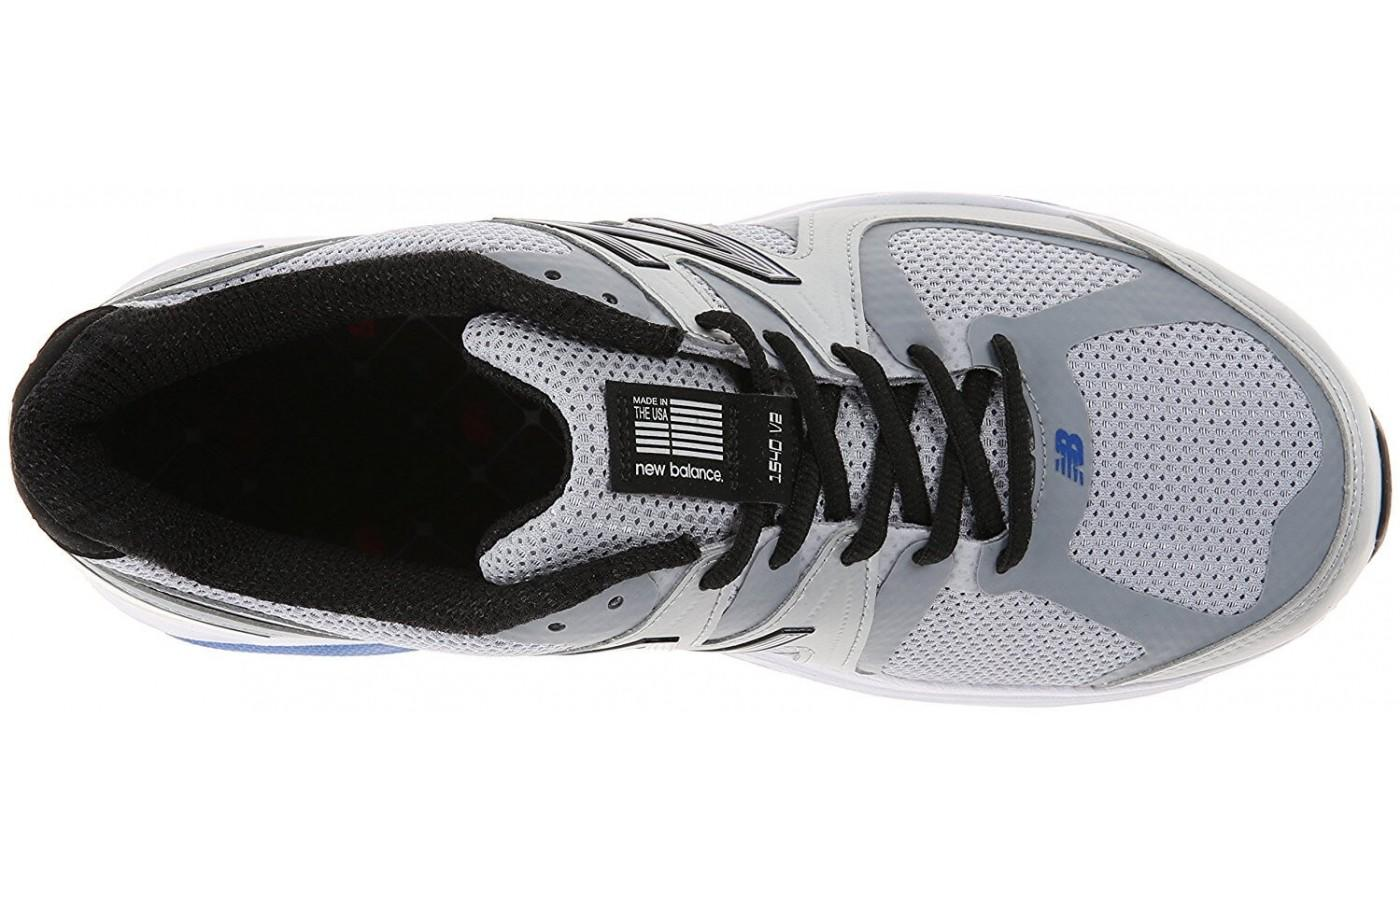 the New Balance 1540 v2\\u0027s upper provides breathability and support .